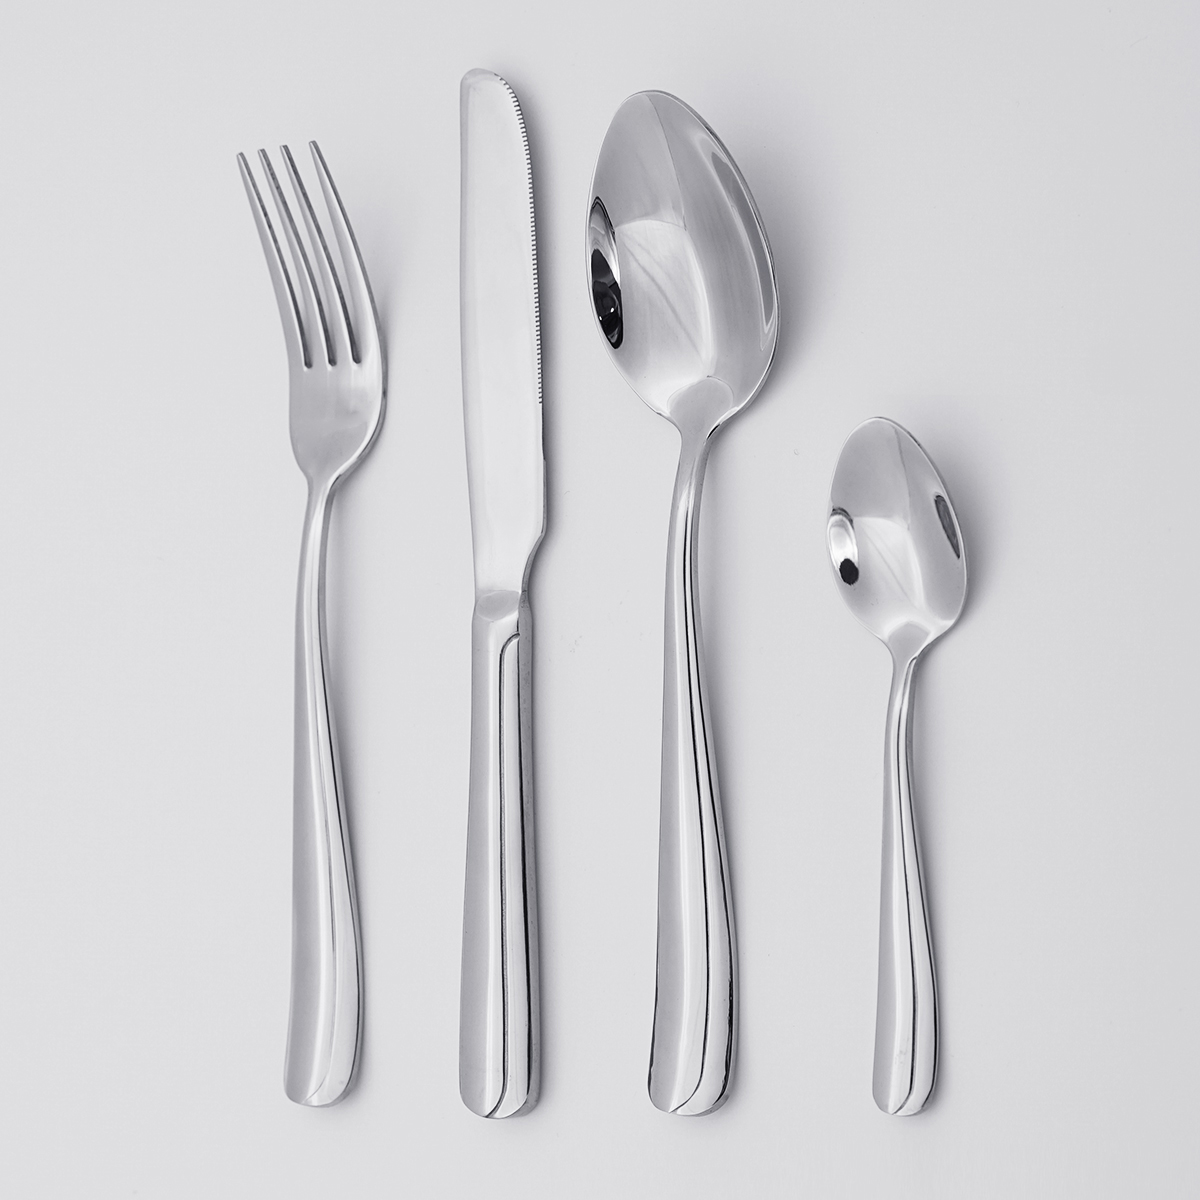 Wholesale Modern Italian Silverware 18/8 Stainless Steel Cutlery Set Exquisite 4pcs Silverware Flatware